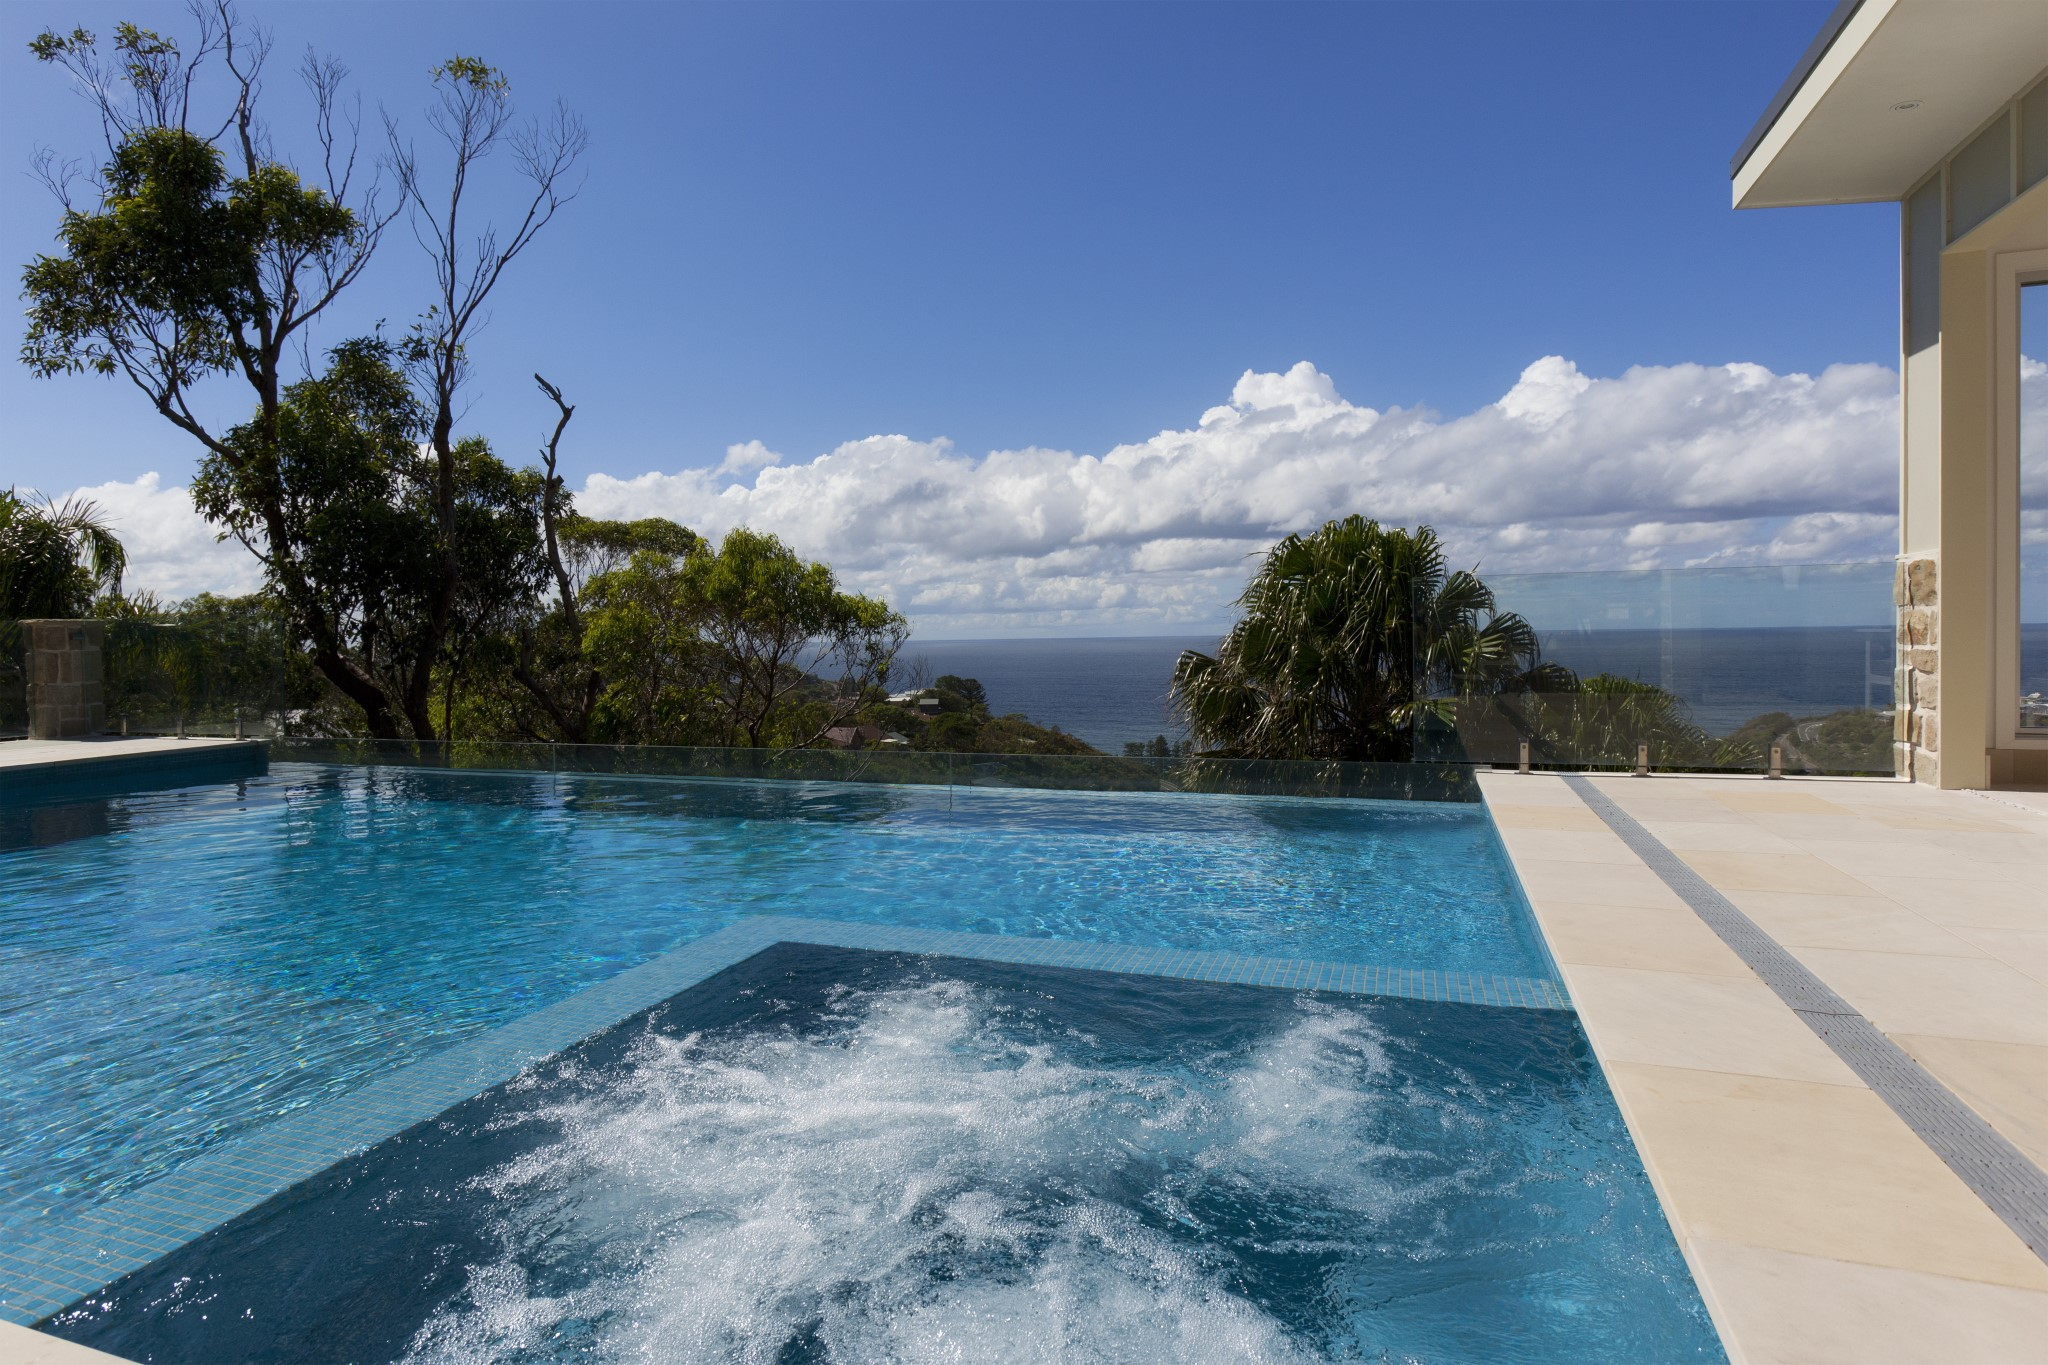 View of a swimming pool with seaview in Bilgola